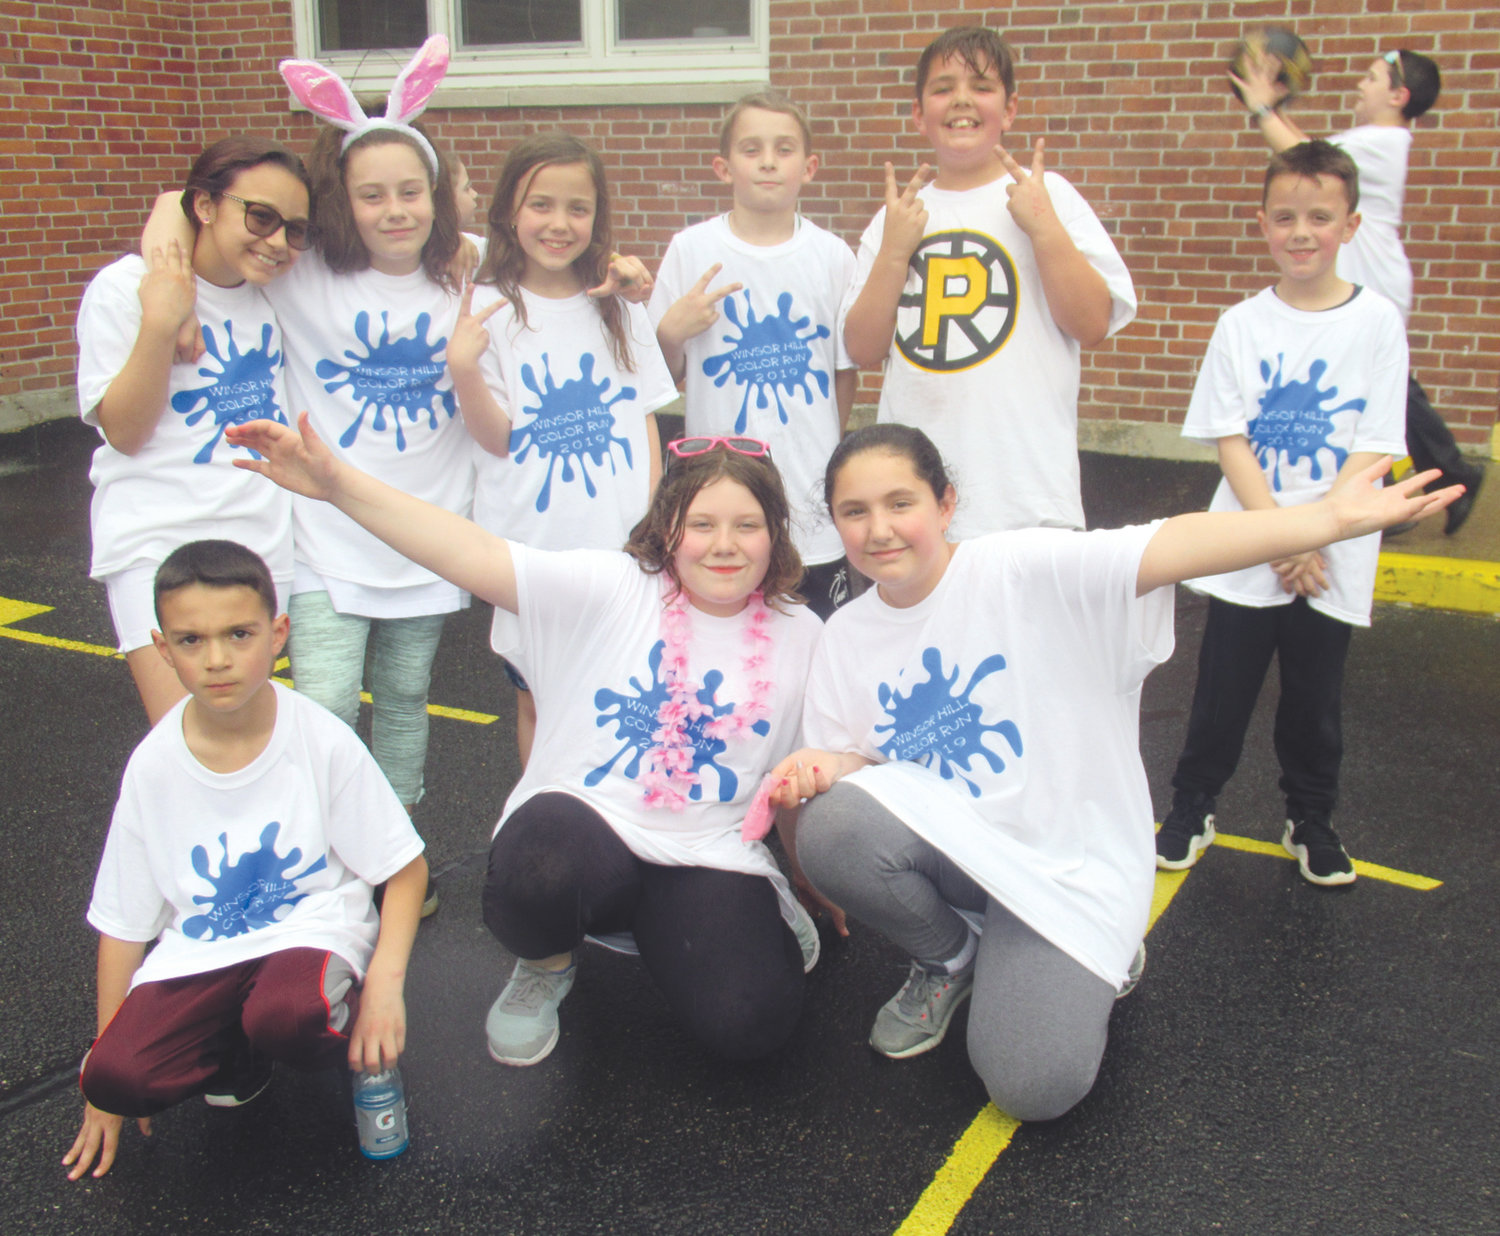 BRIGHT SPIRIT: Students like the children above were decked out in special T-shirts and enjoyed several hours of fun and games during the Johnston elementary school's third annual Color Run.